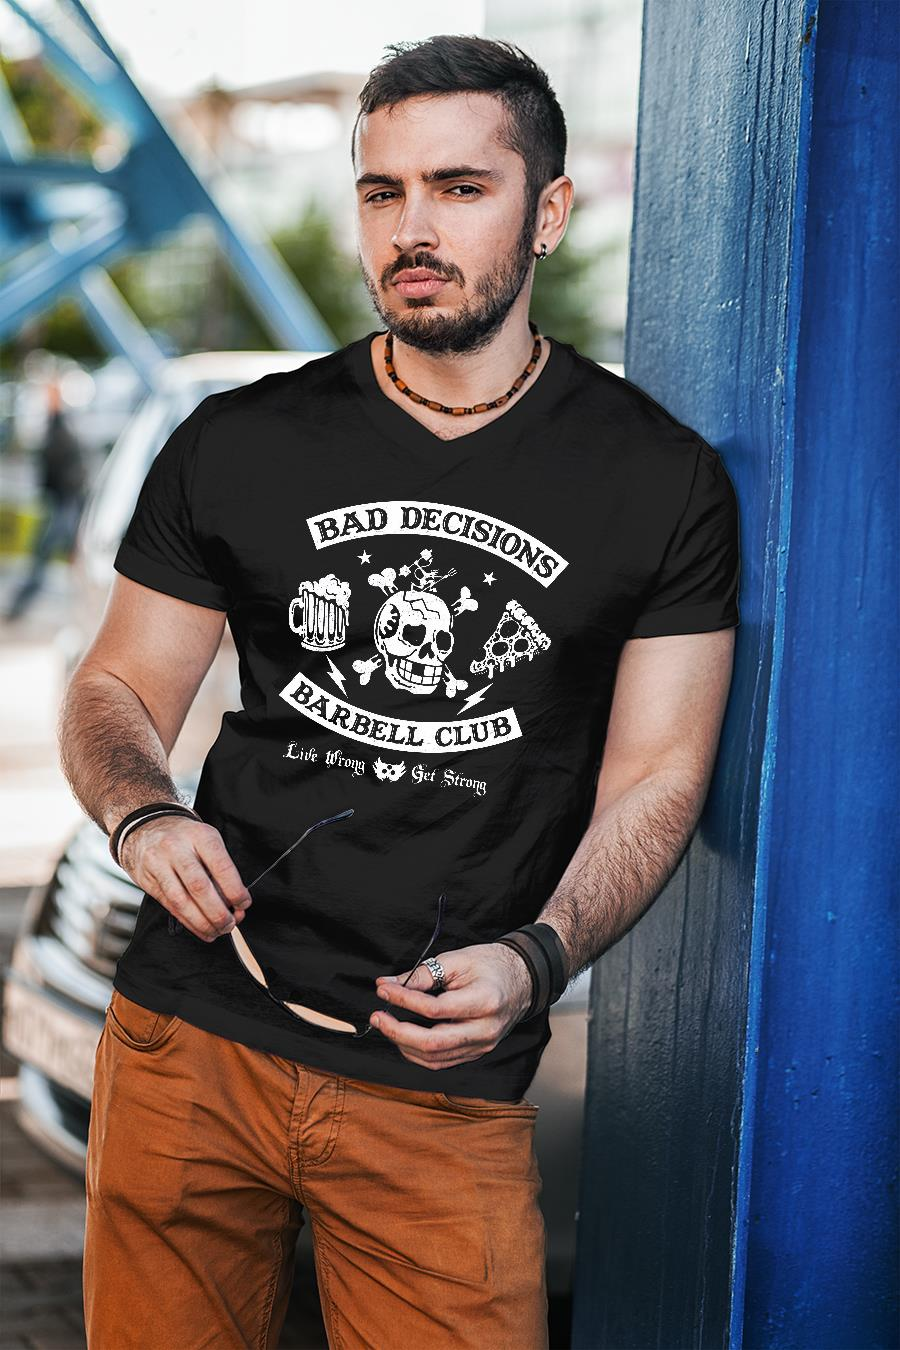 Bad decisions barbell club shirt unisex